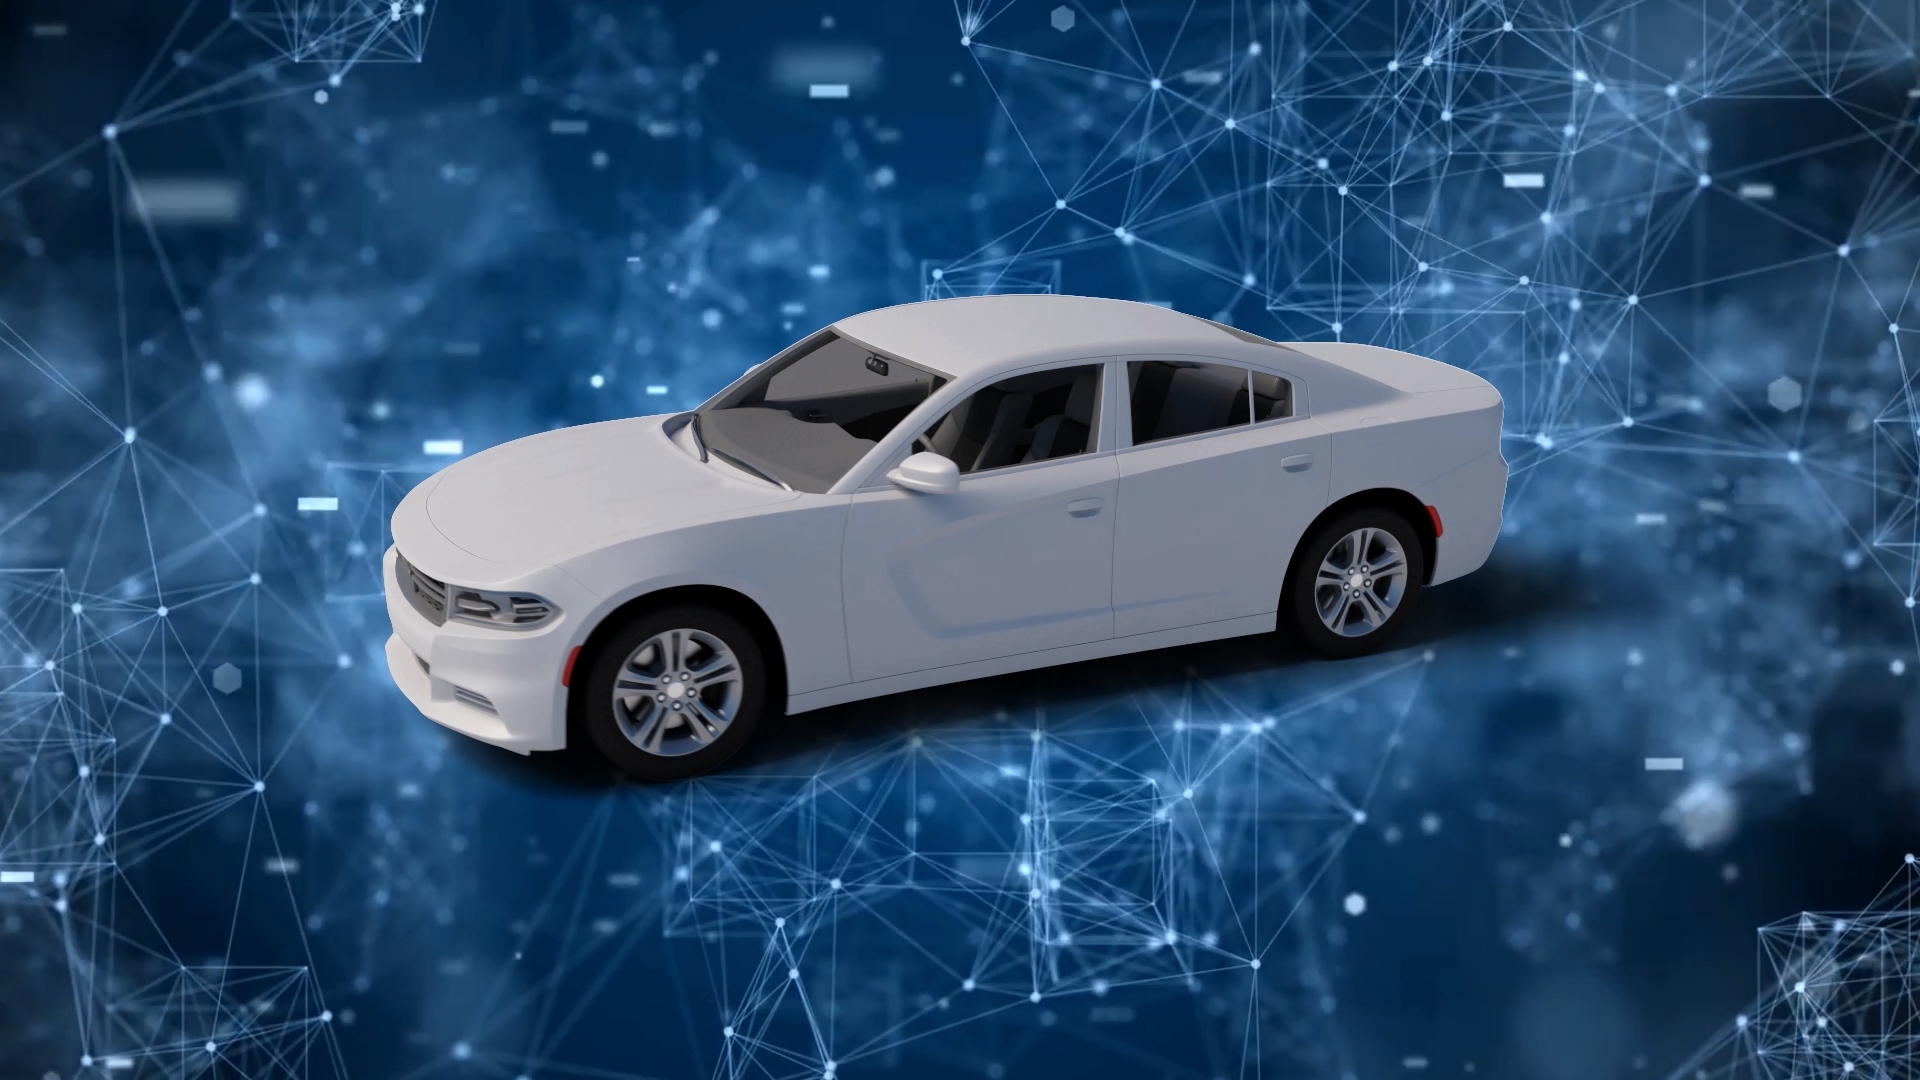 3D model of the car | 3D animation by Darvideo